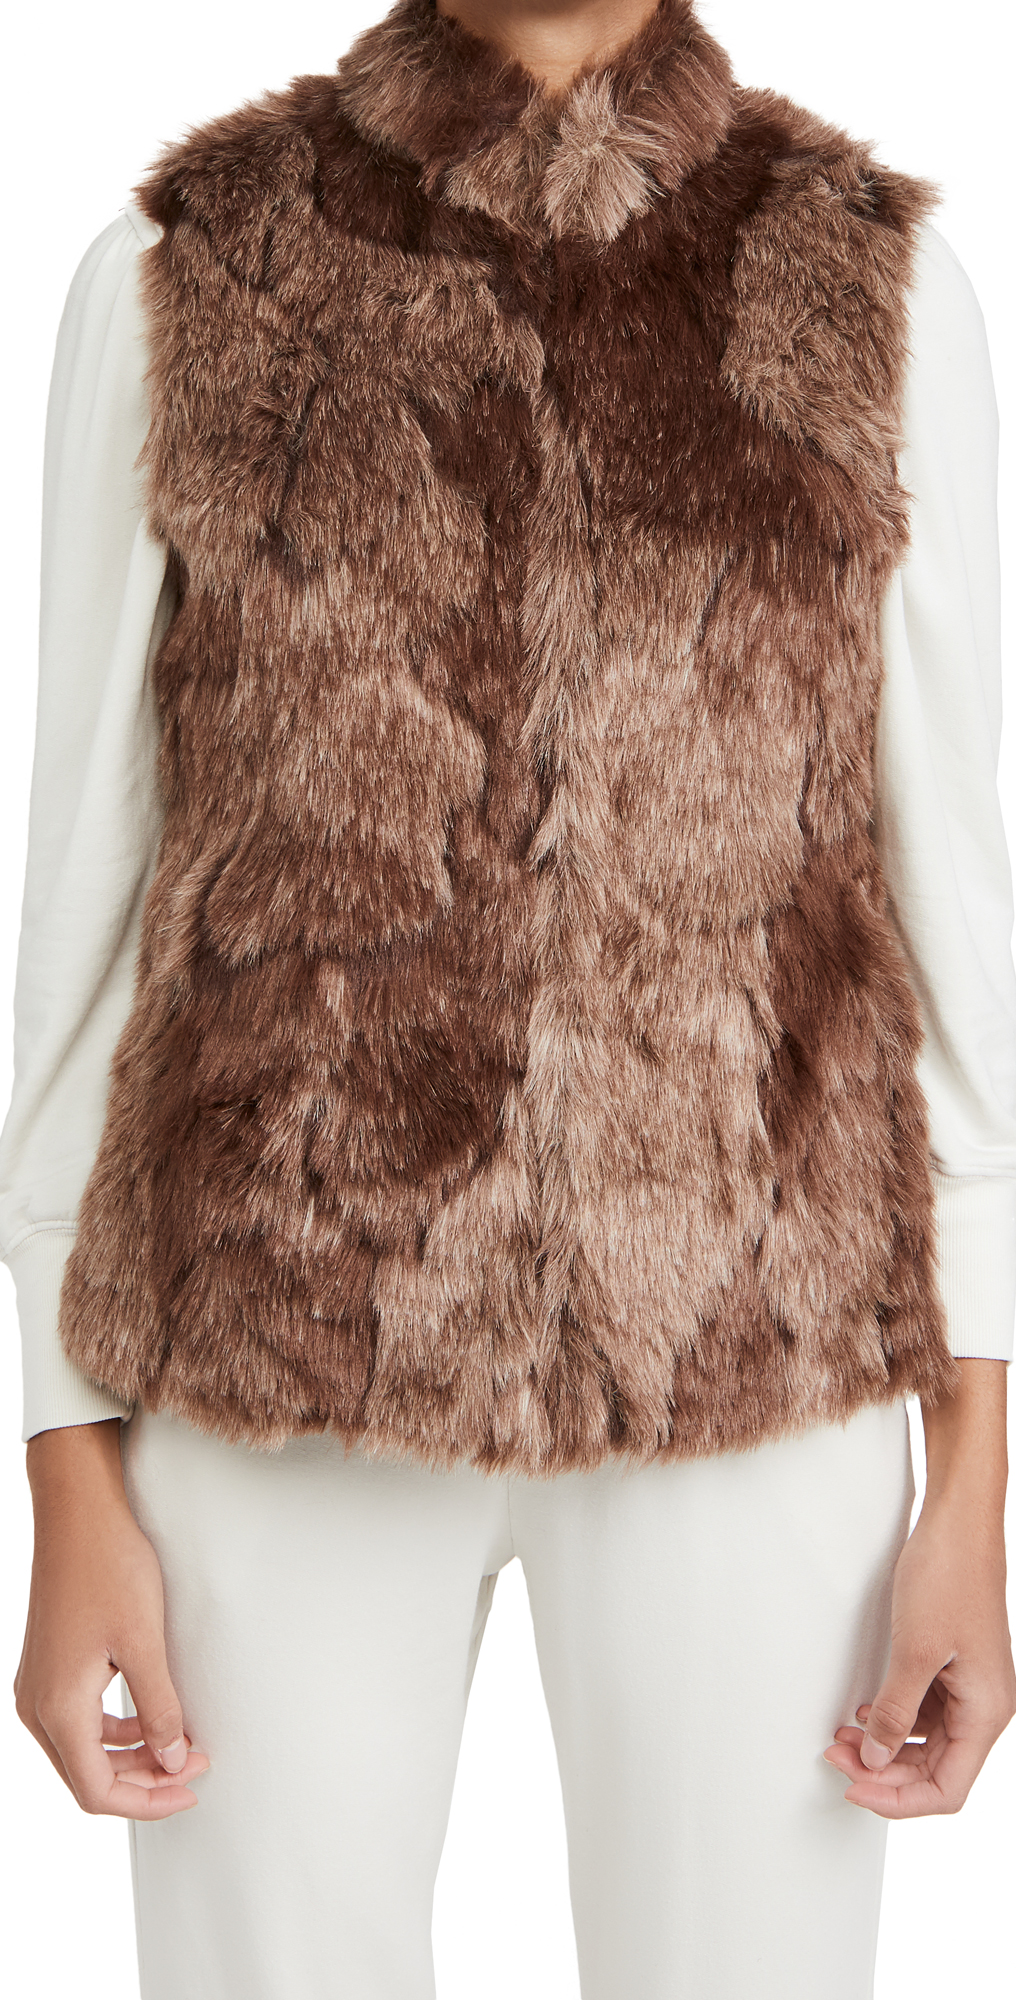 BB Dakota Fur What It's Worth Faux Fur Vest